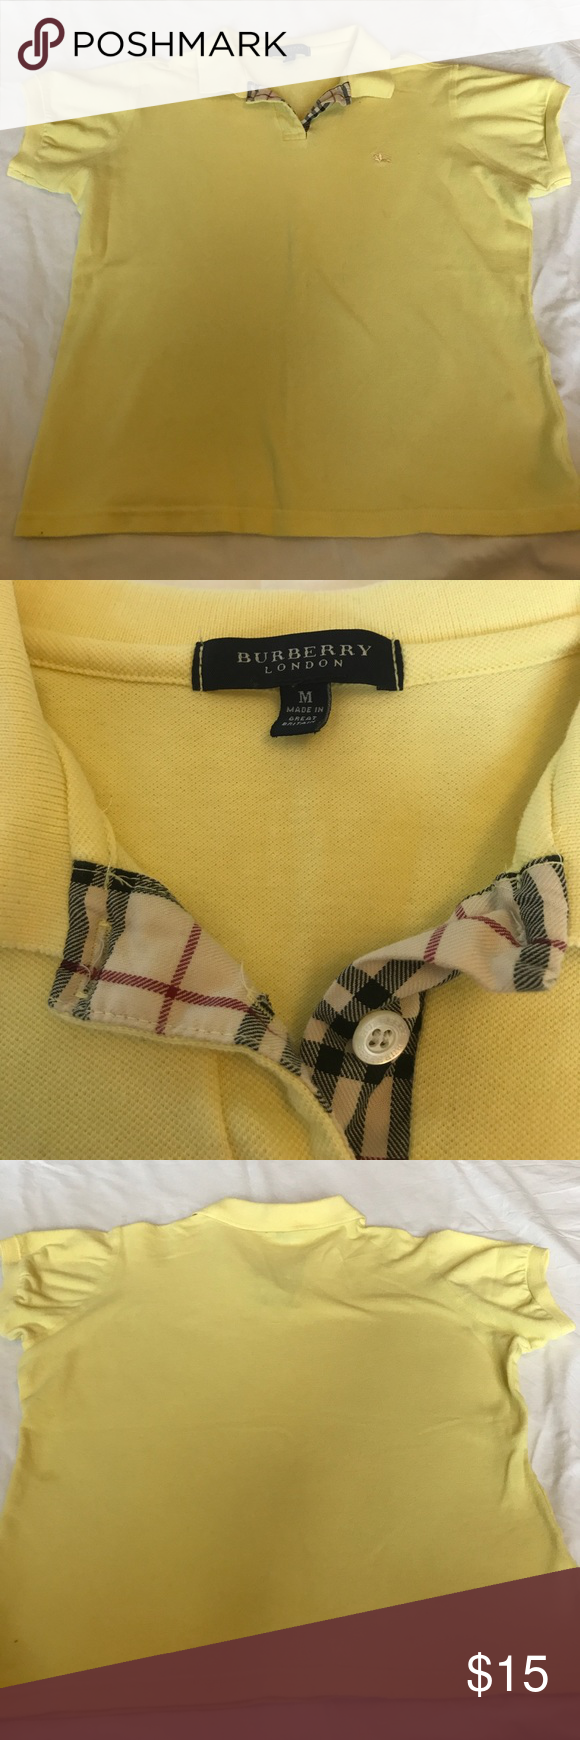 Girls Burberry T-Shirt In excellent condition! Comes from a pet free/ smoke free home. Burberry Shirts & Tops Tees - Short Sleeve